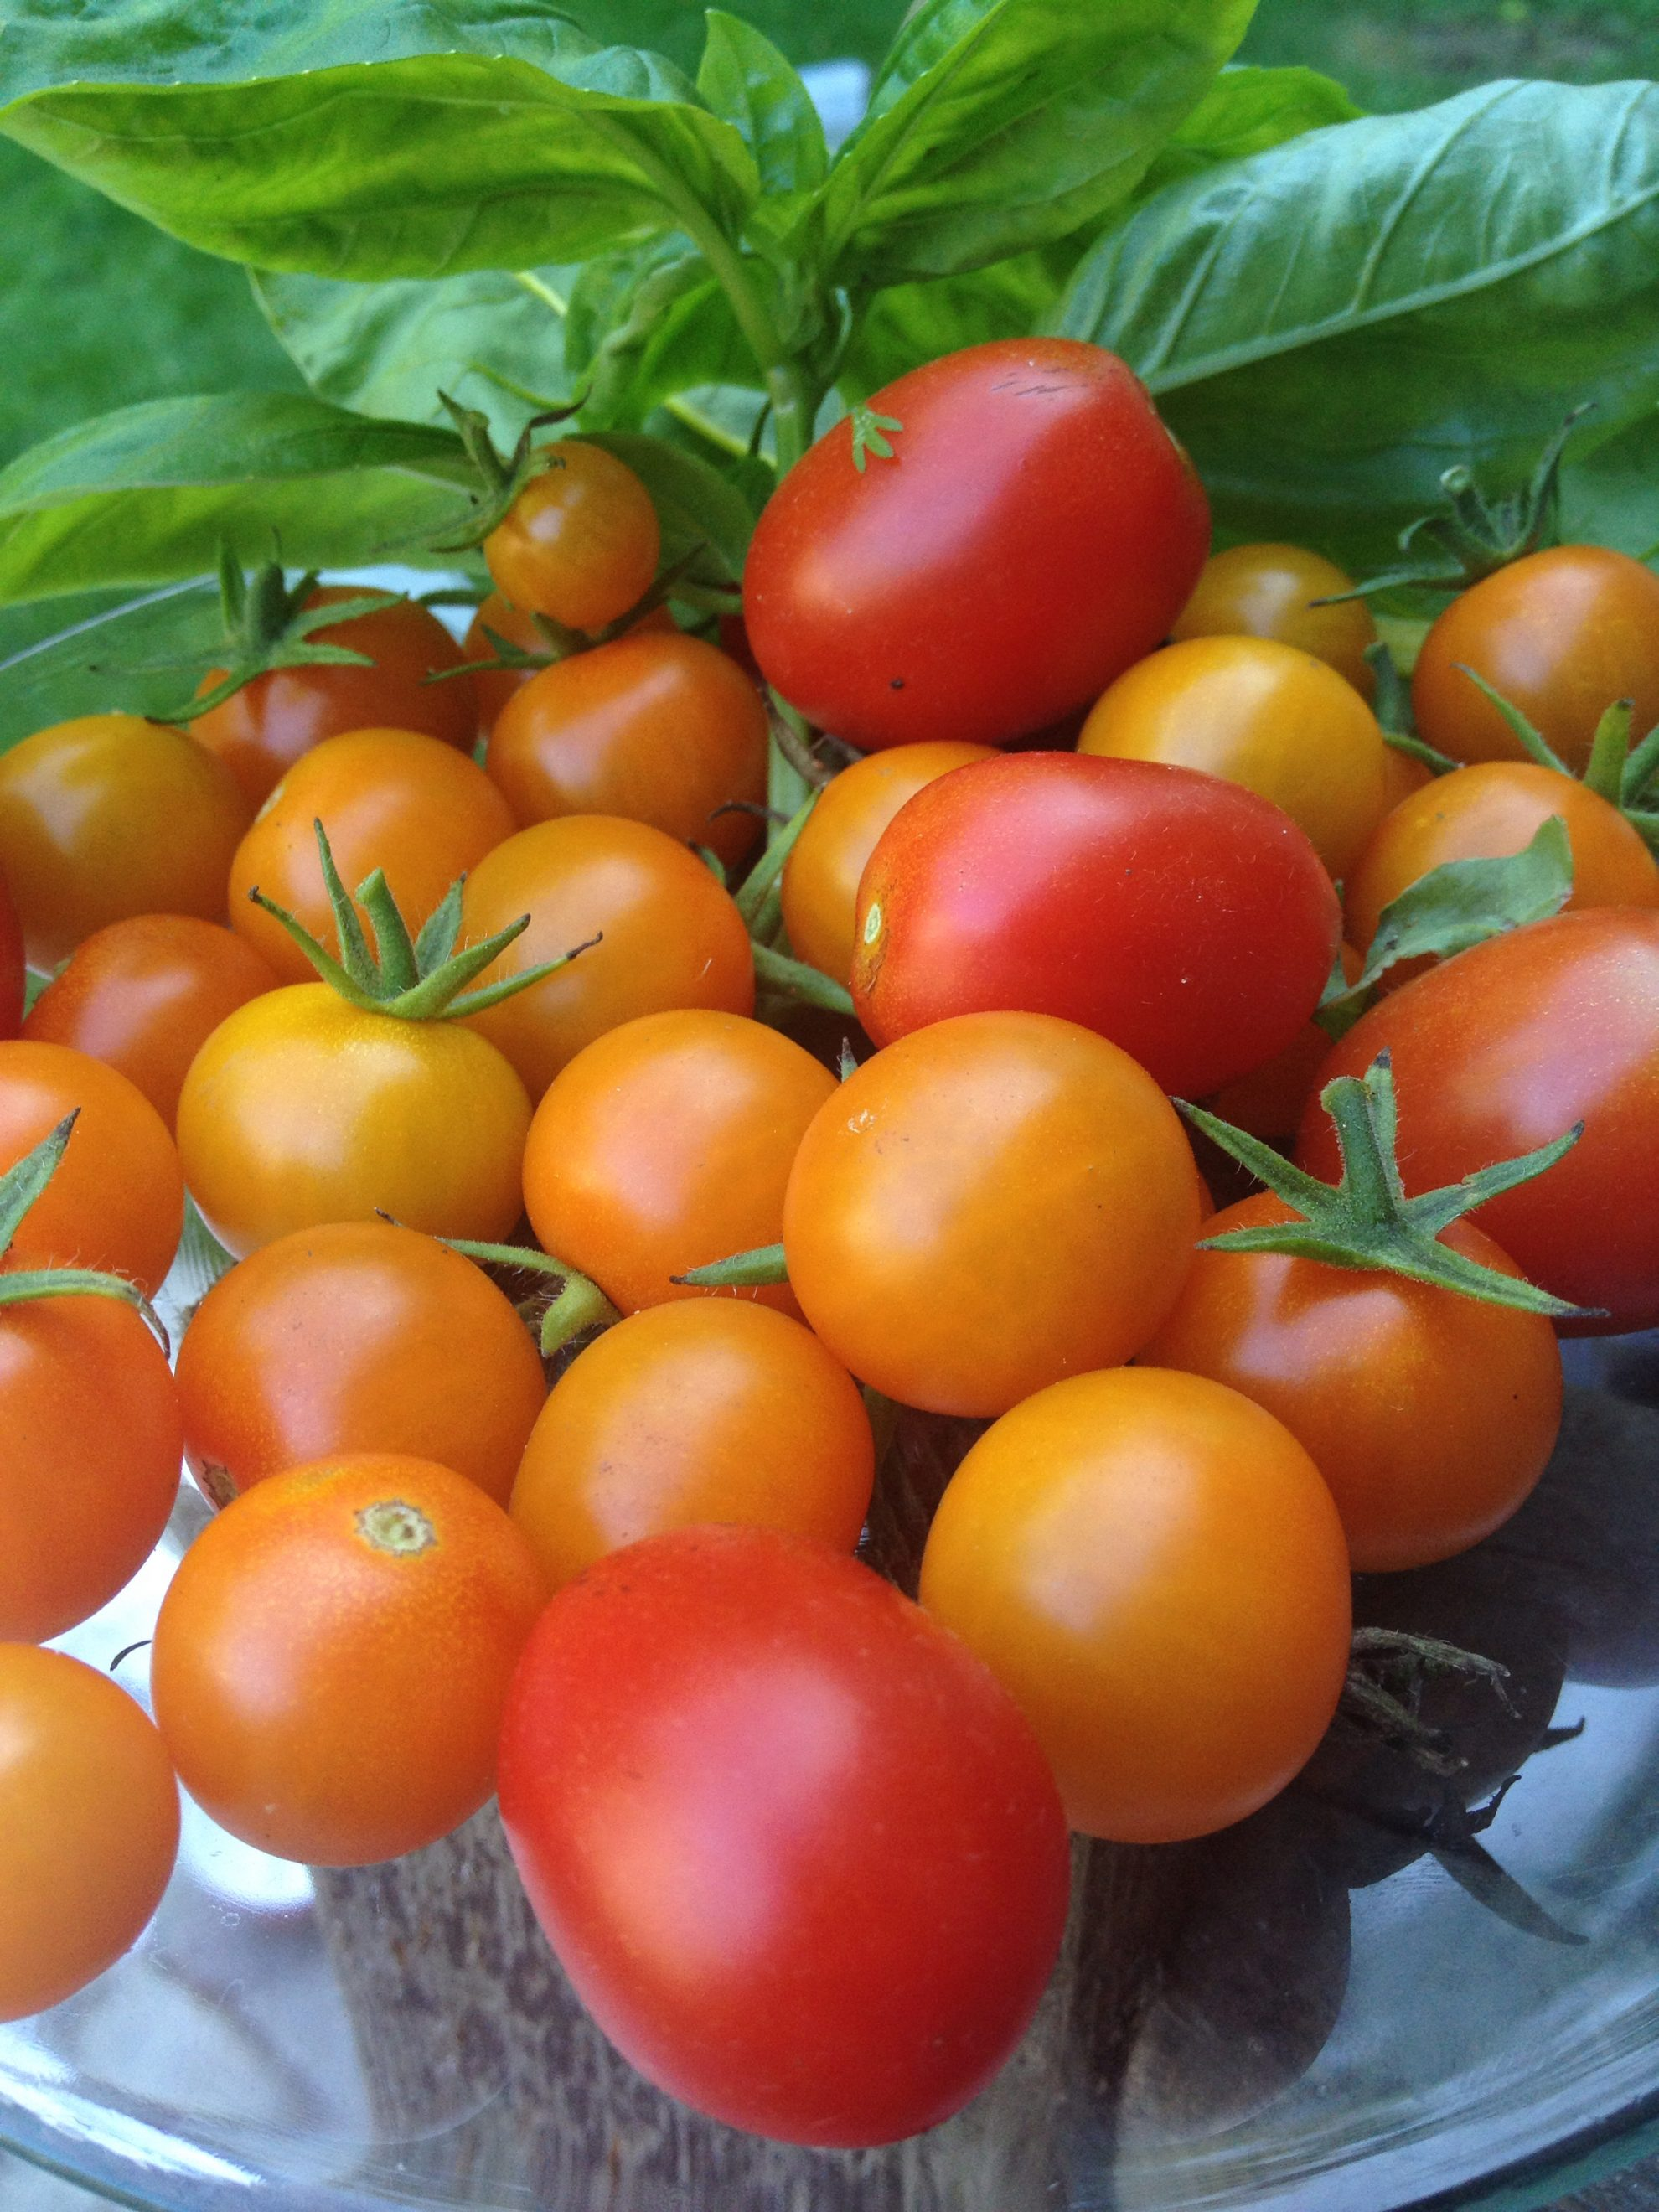 Finally, harvest season time has arrived in Maine. I picked all of these tiny orangey yellow Sungold tomatoes in one go last night in the garden. There are a few plum-size tomatoes as well, which are really good but whose strain I cannot remember.